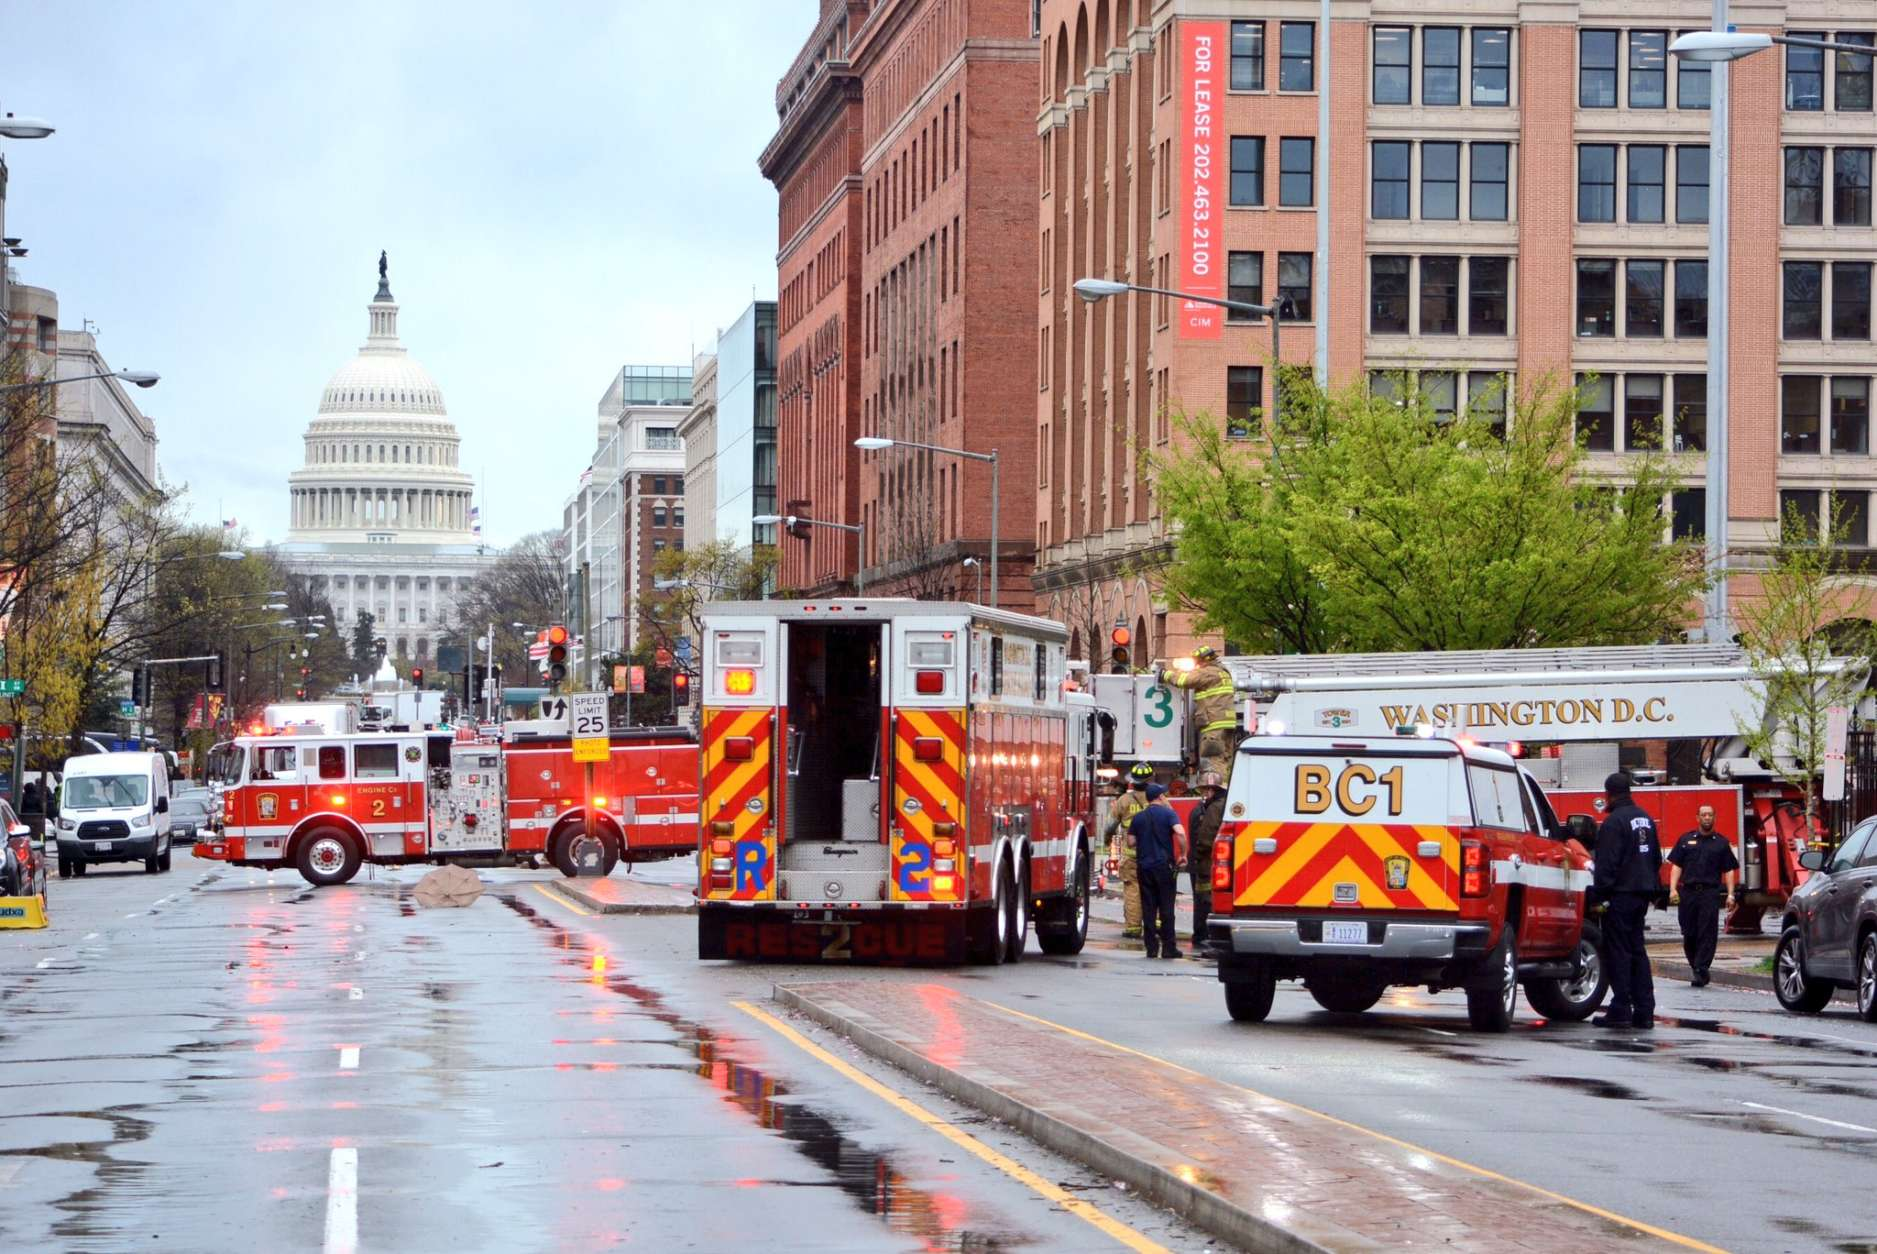 North Capitol Street is blocked by firefighters responding to the wind damage to the roof at St. Aloysius. (WTOP/Dave Dildine)